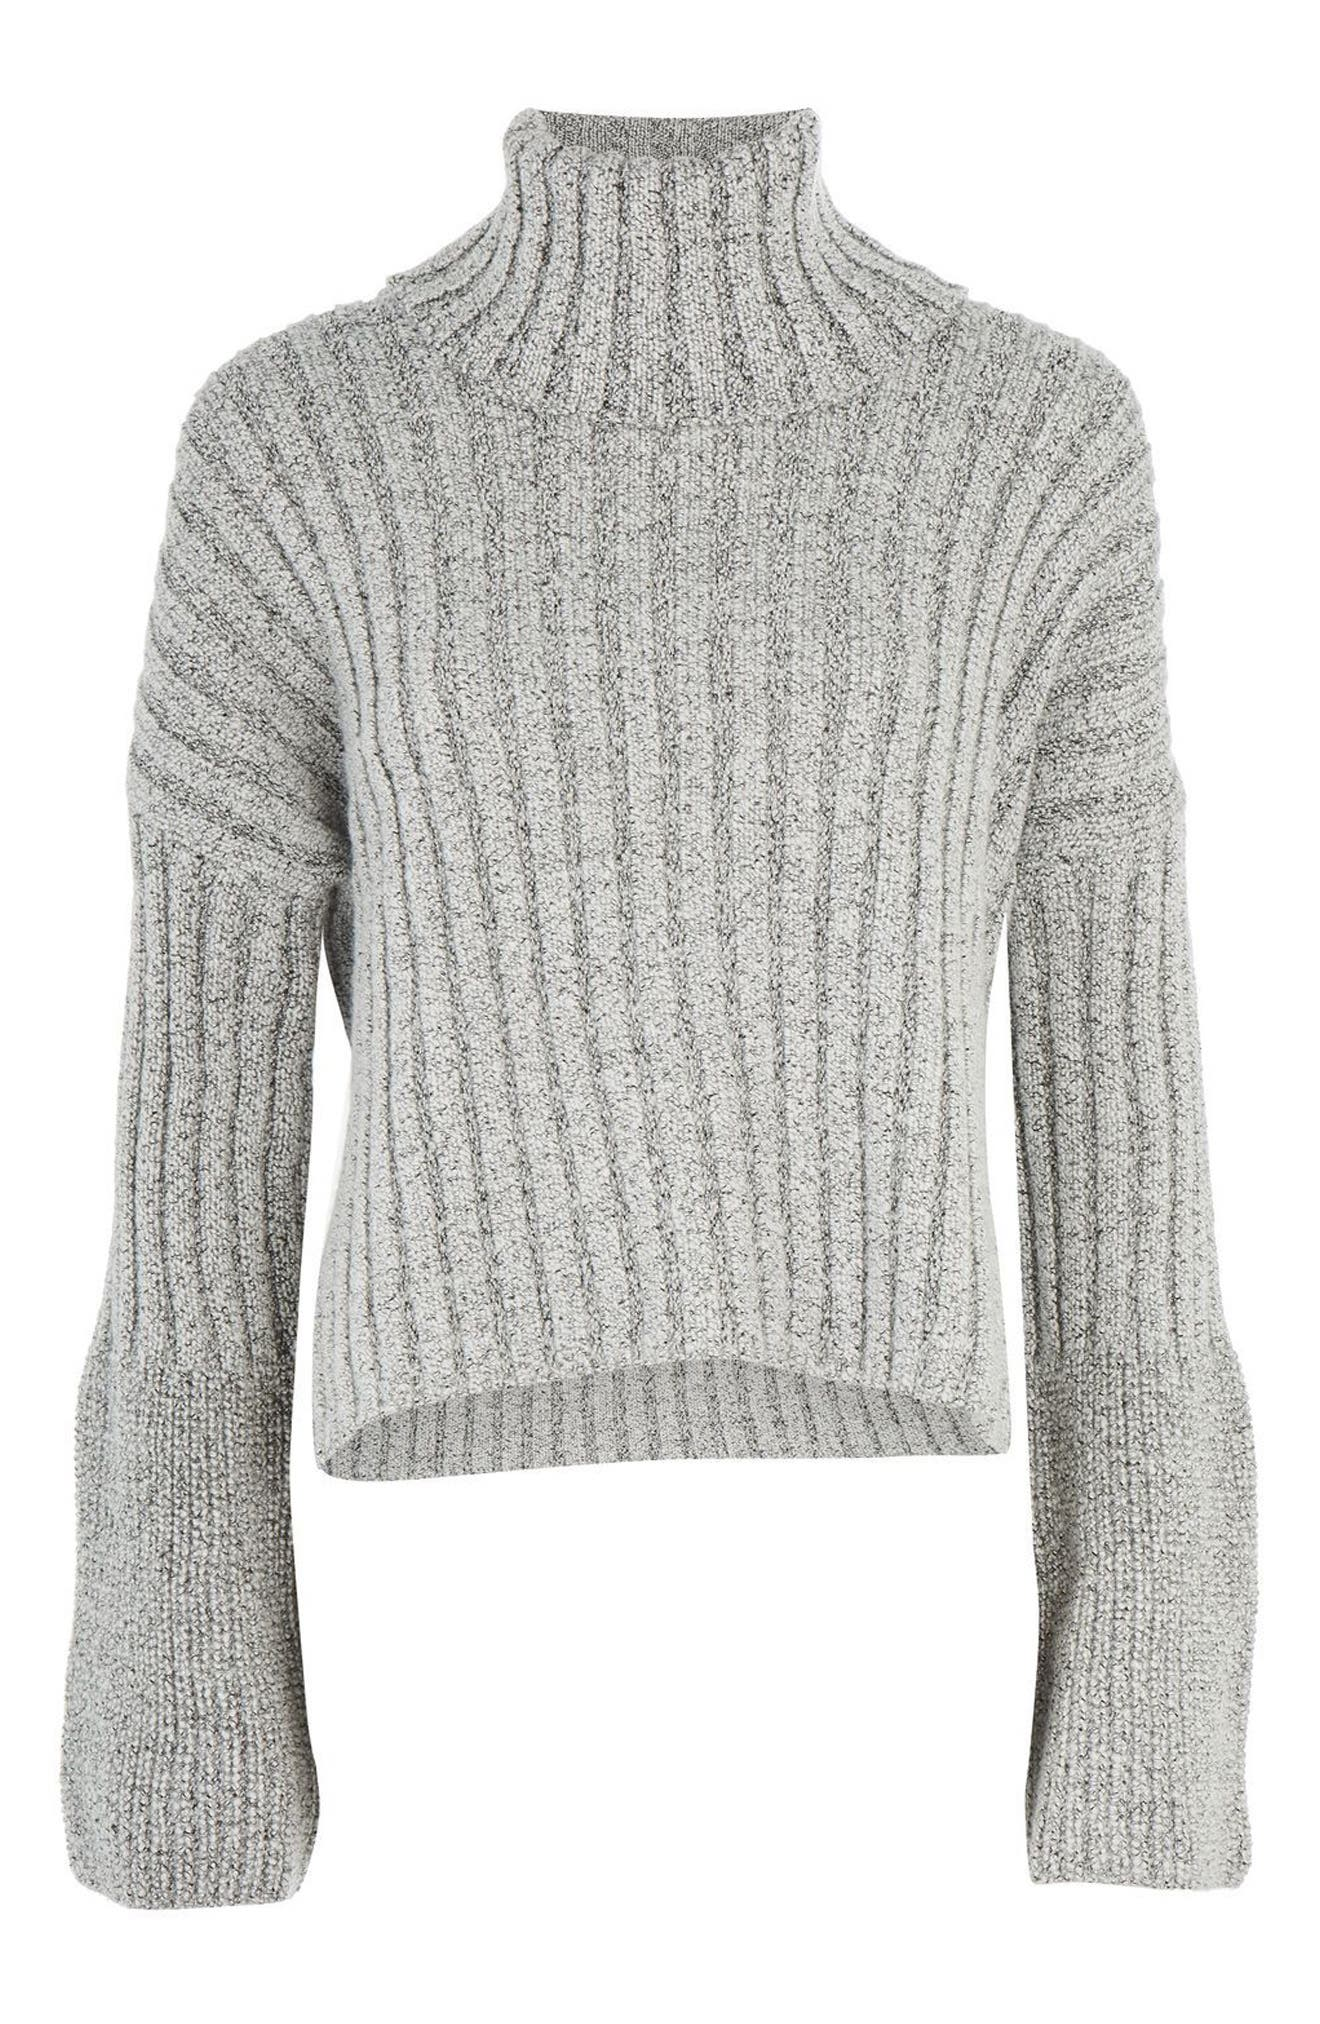 Flare Cuff Turtleneck Sweater,                             Alternate thumbnail 3, color,                             020